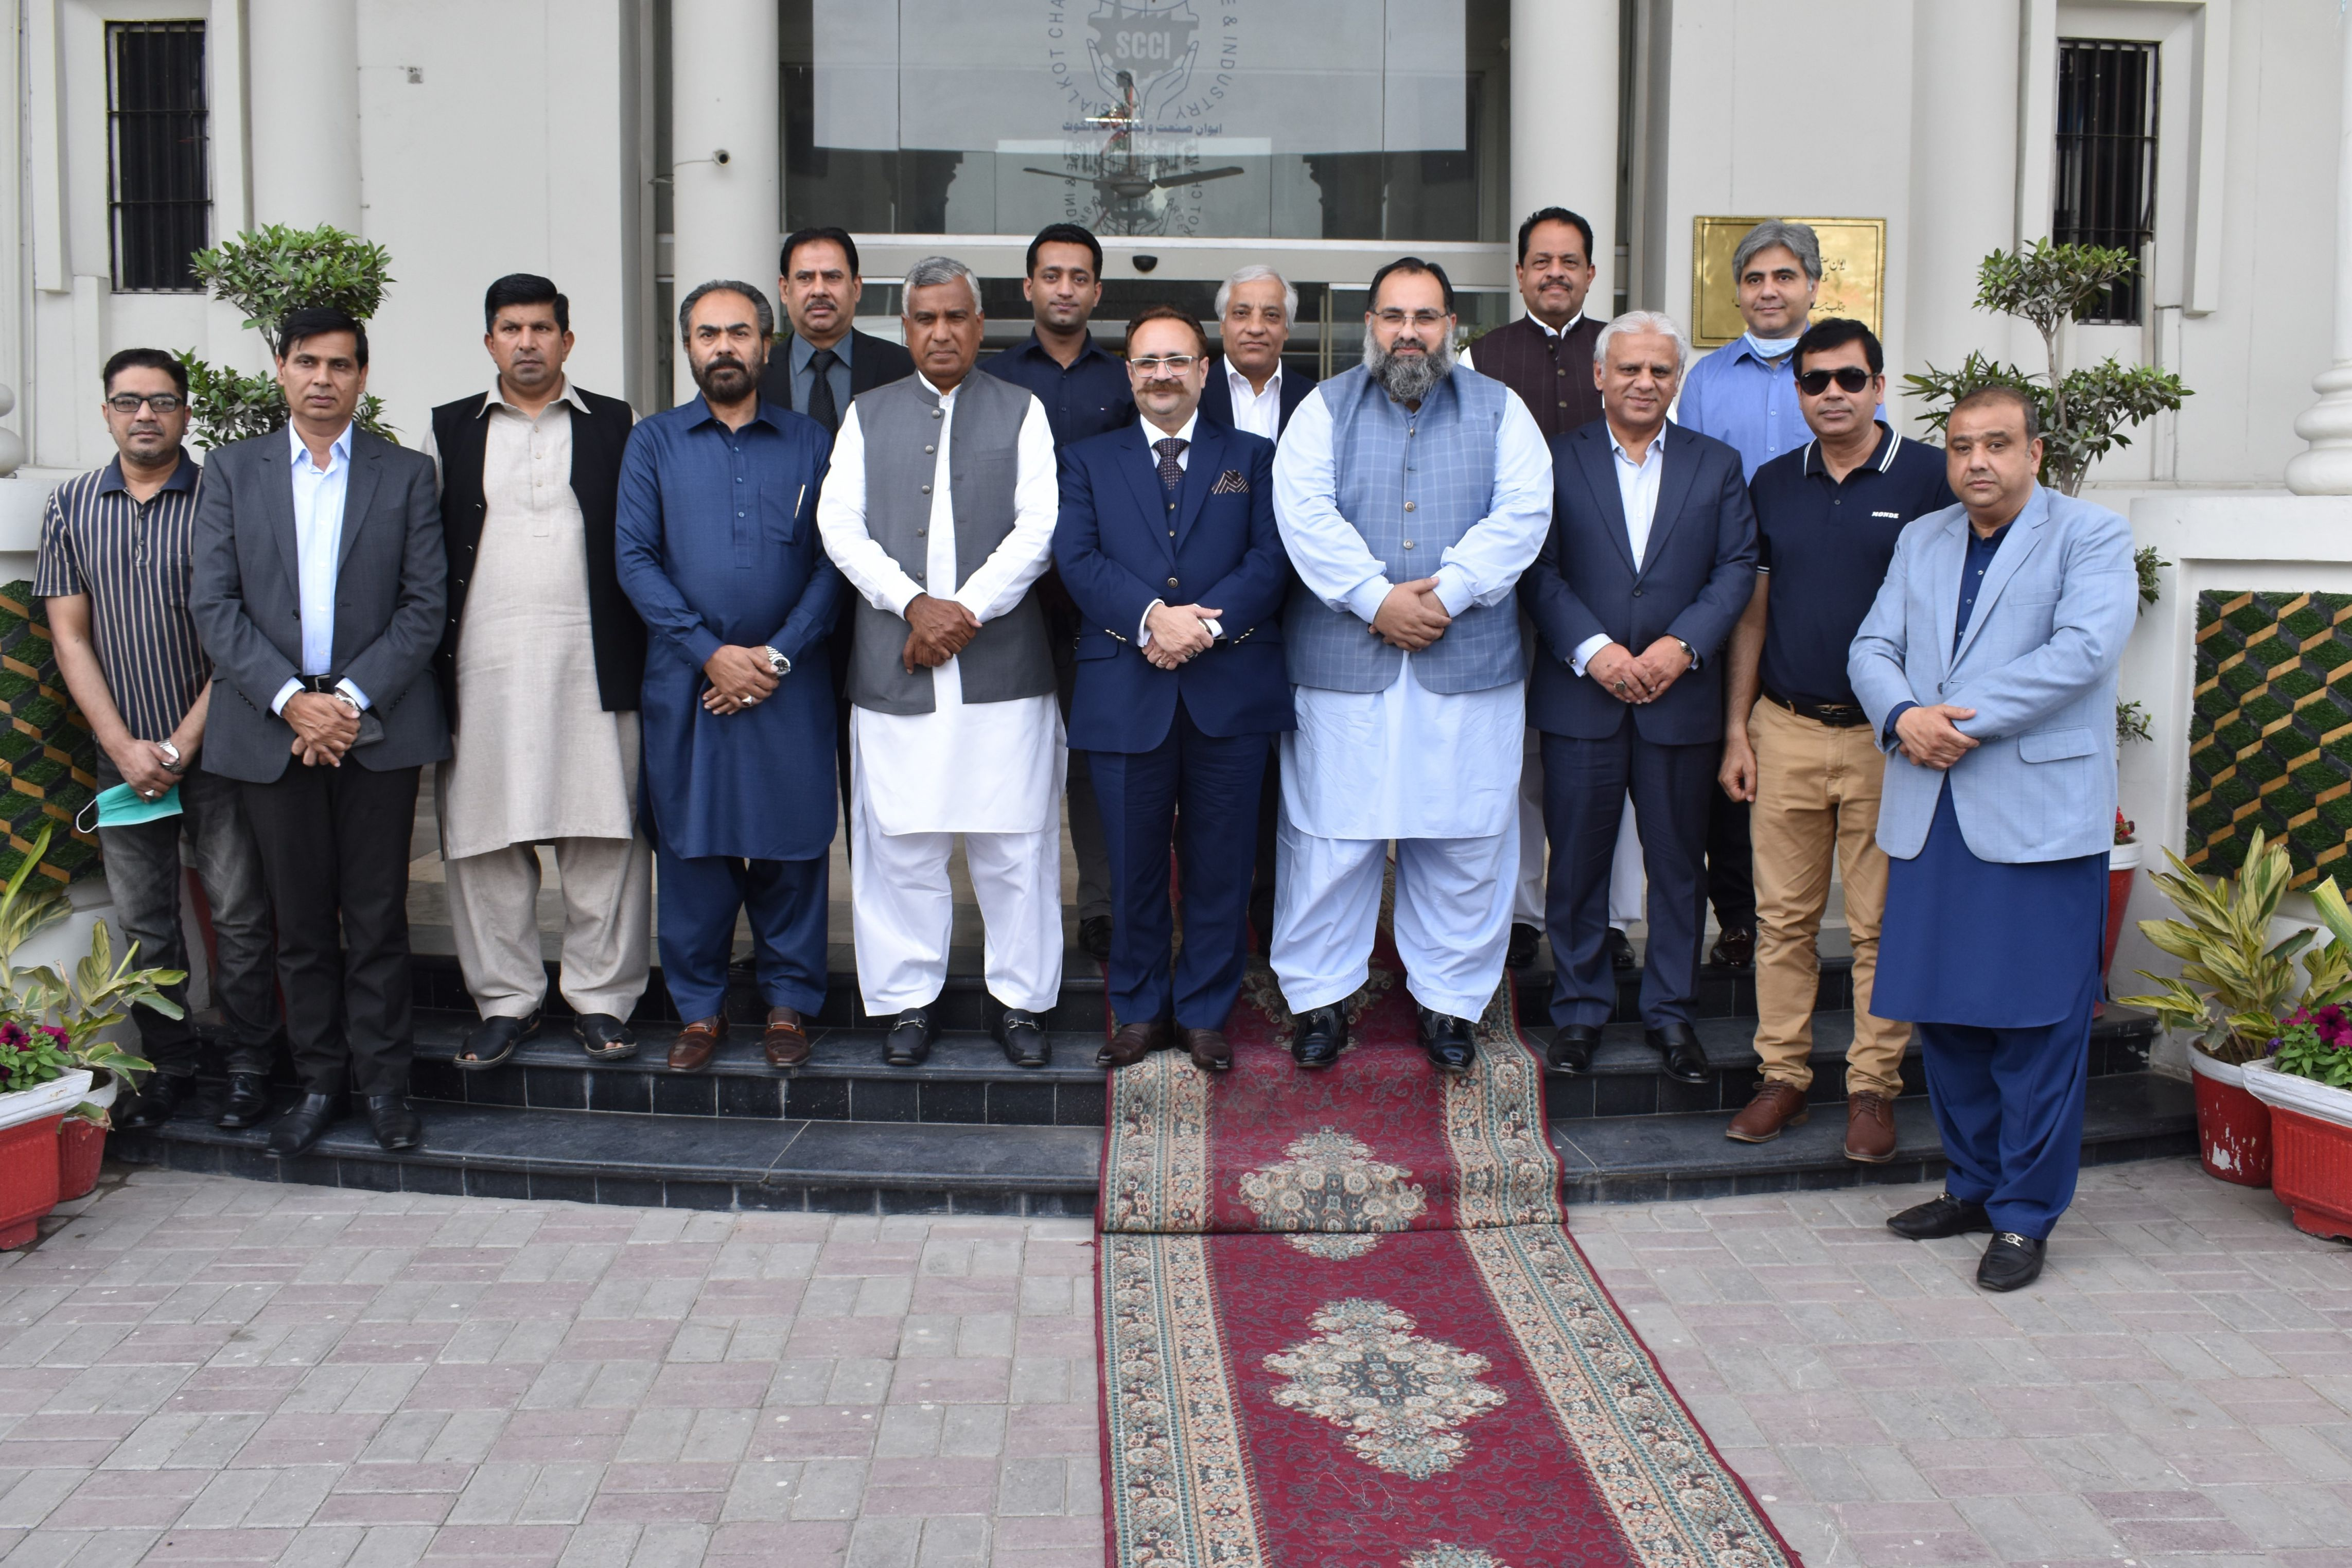 On March 17,2021, Sardar Tanveer Ilyas Khan, Special Assistant to the Chief Minister on Investment and Trade/Chairman, Punjab Board of Investment and Trade visited SCCI,  wherein, Mr. Qaisar Iqbal Baryar, President, SCCI discussed the issues faced by the Industry of Sialkot and also proposed solutions for promotion of exports of the region.  Sardar Tanveer Ilyas Khan assured him all possible support in early resolution of the issues. Mr. Khan also appreciated the role of SCCI for striving to enable a business-friendly environment for SME based Industry and accomplishing multiple self-sustained projects.